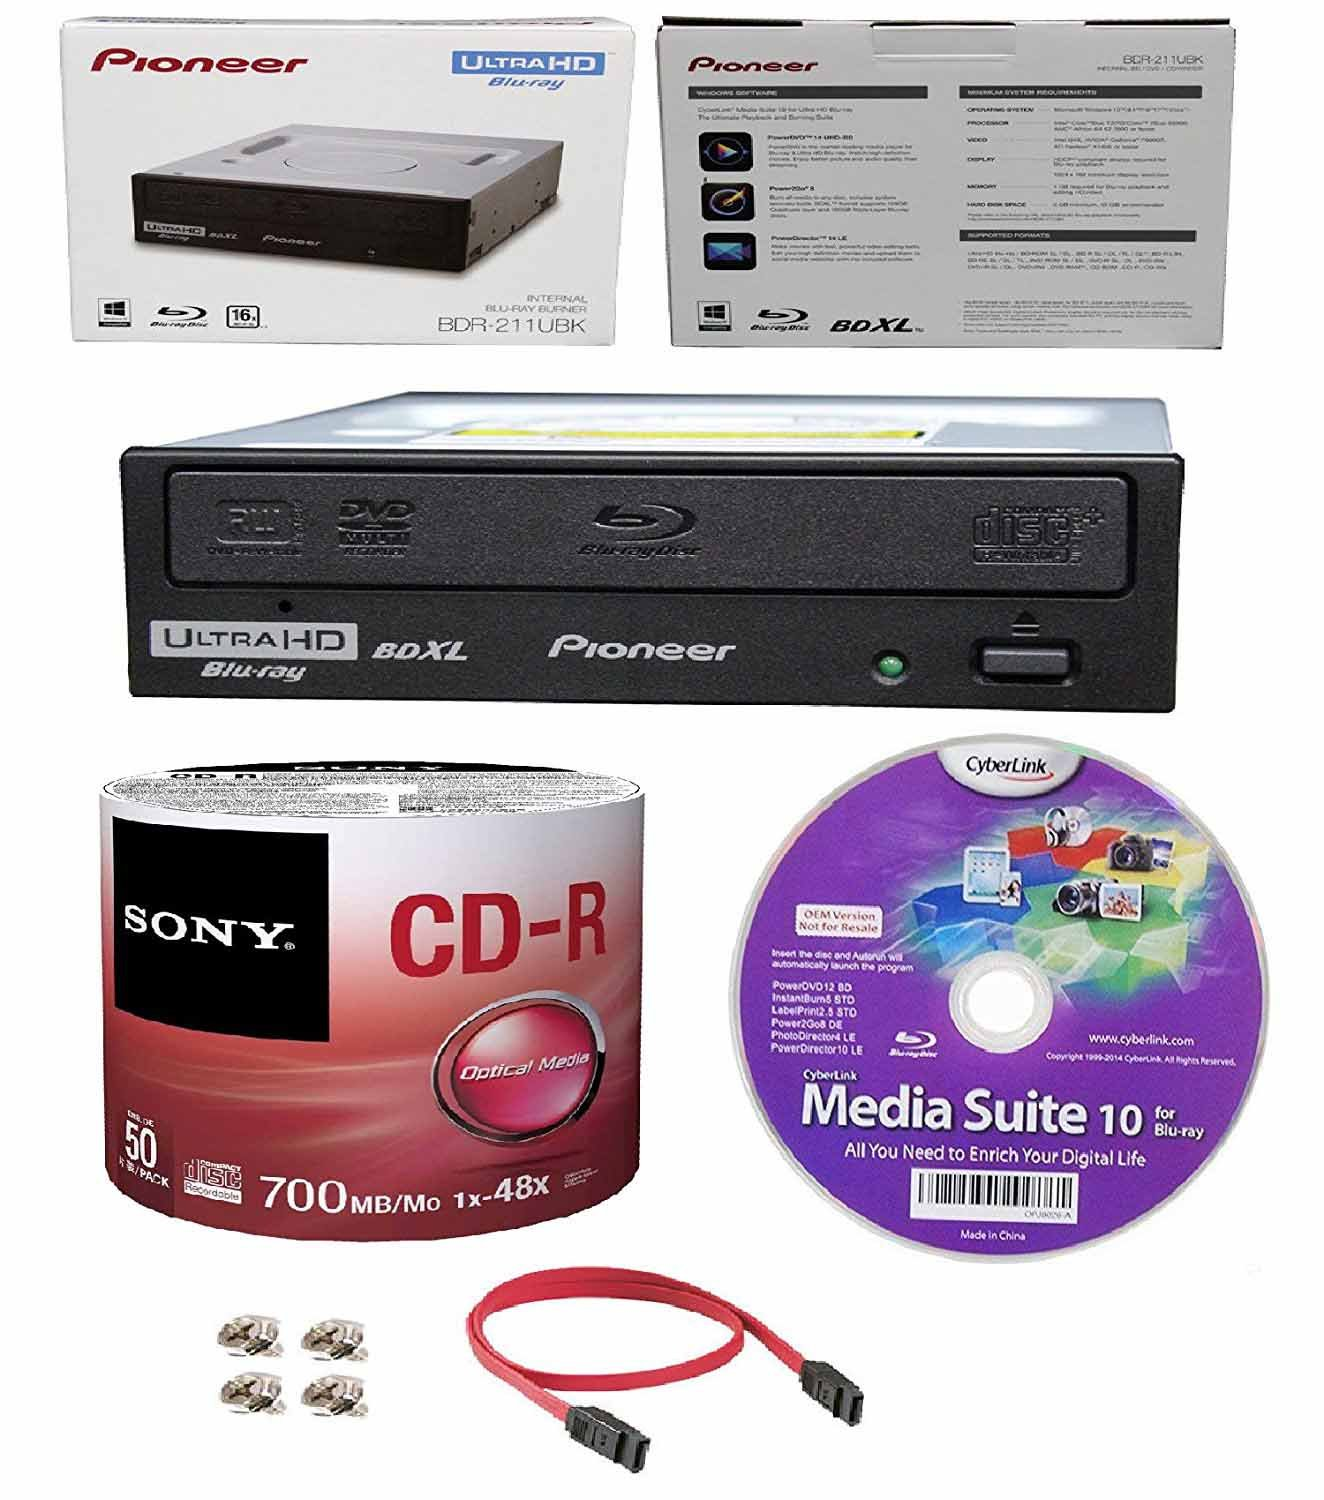 Pioneer 16x BDR-211UBK Internal Ultra HD Blu-ray BDXL Burner, Cyberlink Software and Cable Accessories Bundle with 50pk CD-R Sony 700MB 48X Recordable Media